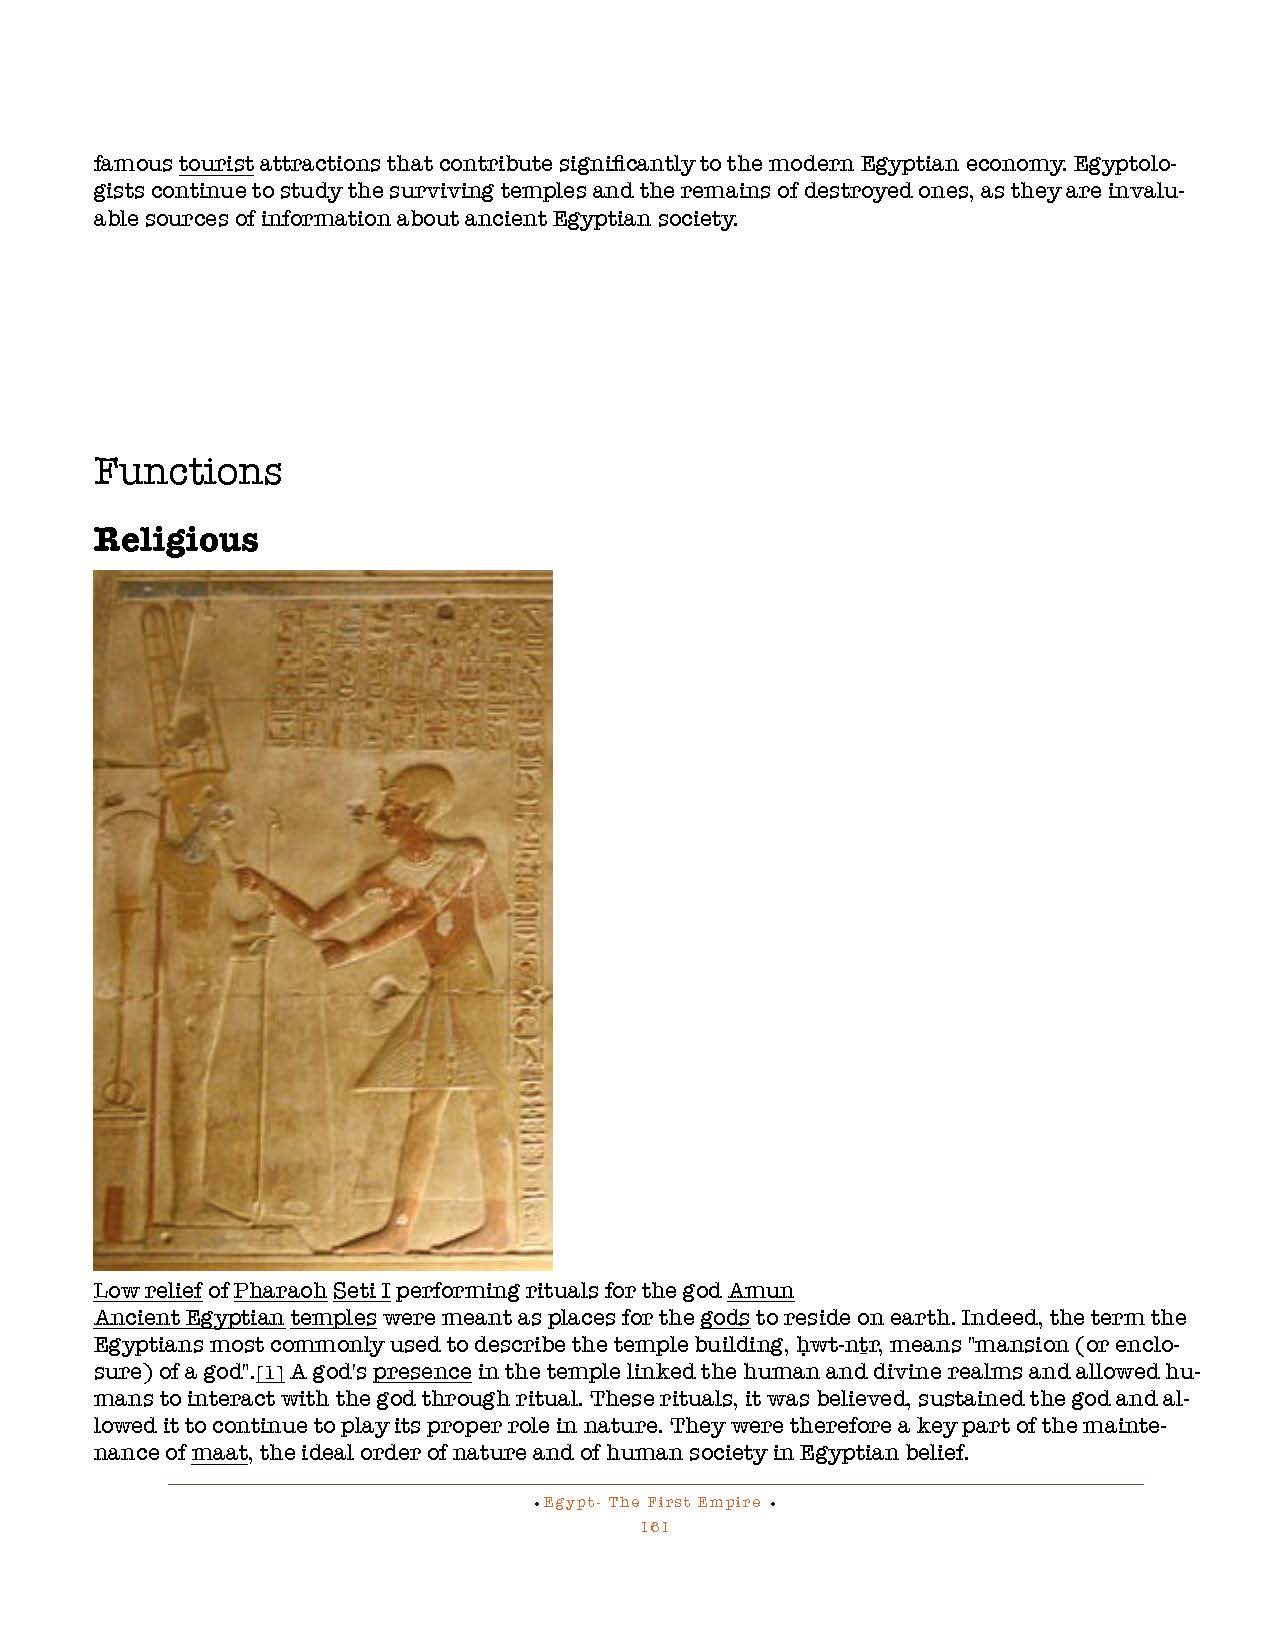 HOCE- Egypt  (First Empire) Notes_Page_161.jpg